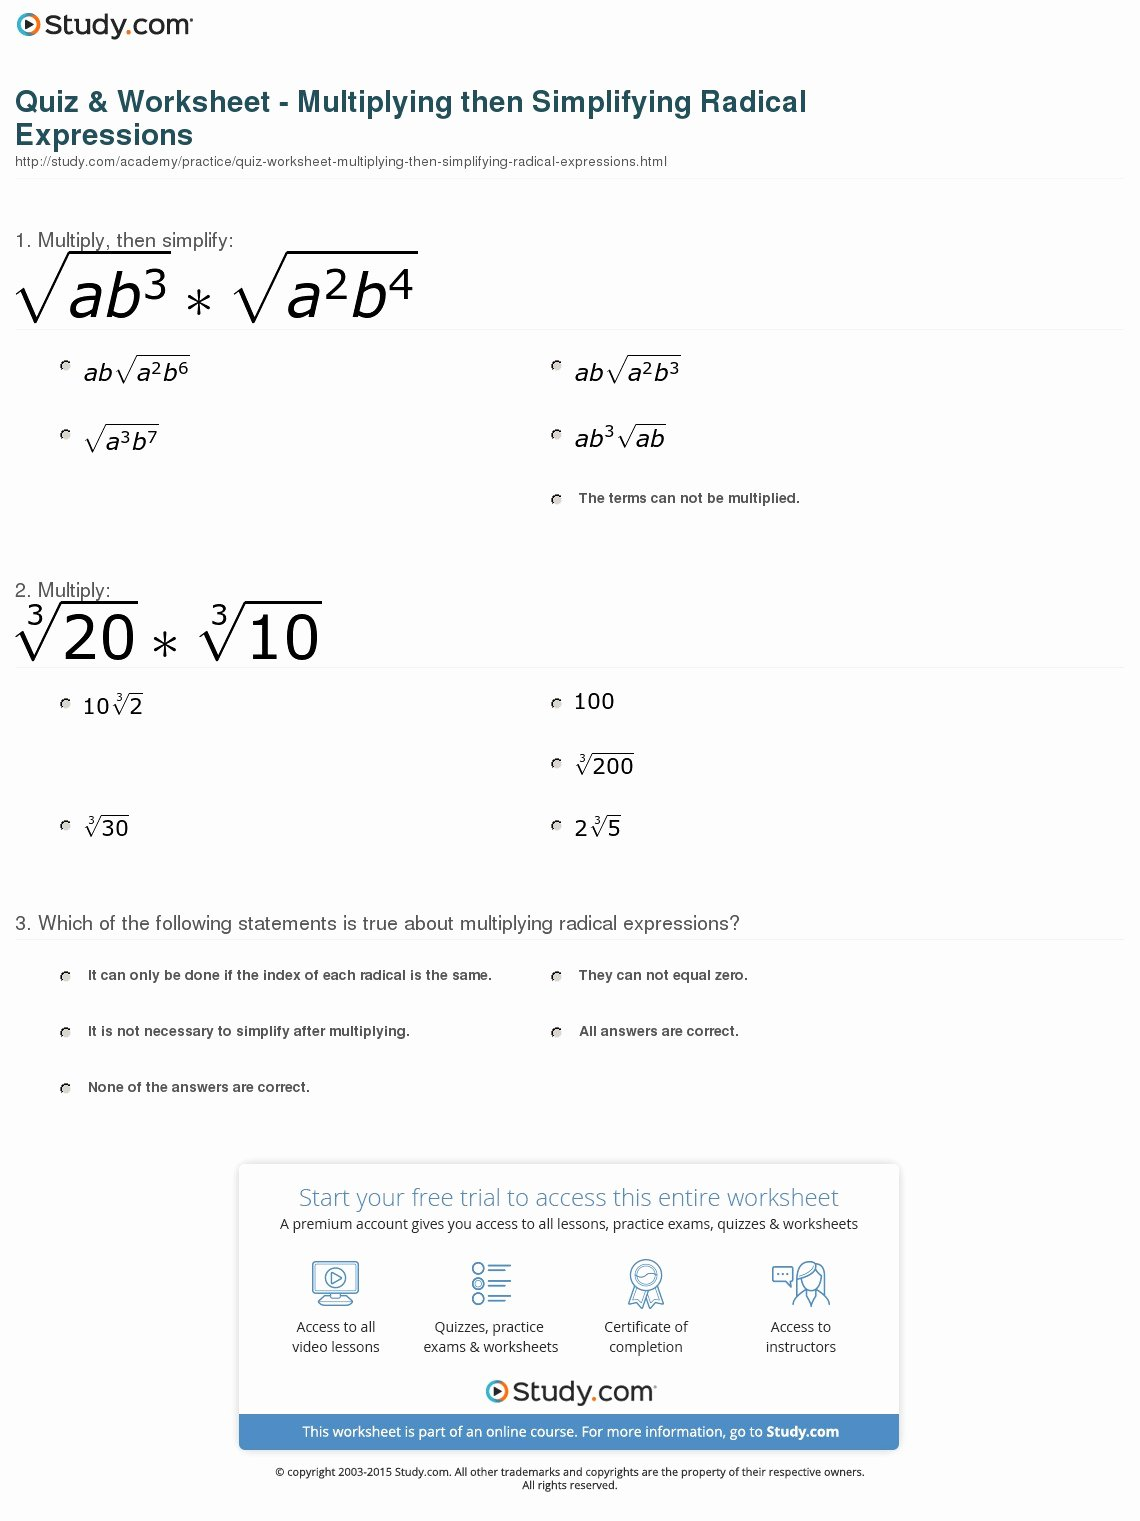 Simplifying Radicals Worksheet with Answers Inspirational Quiz & Worksheet Multiplying then Simplifying Radical